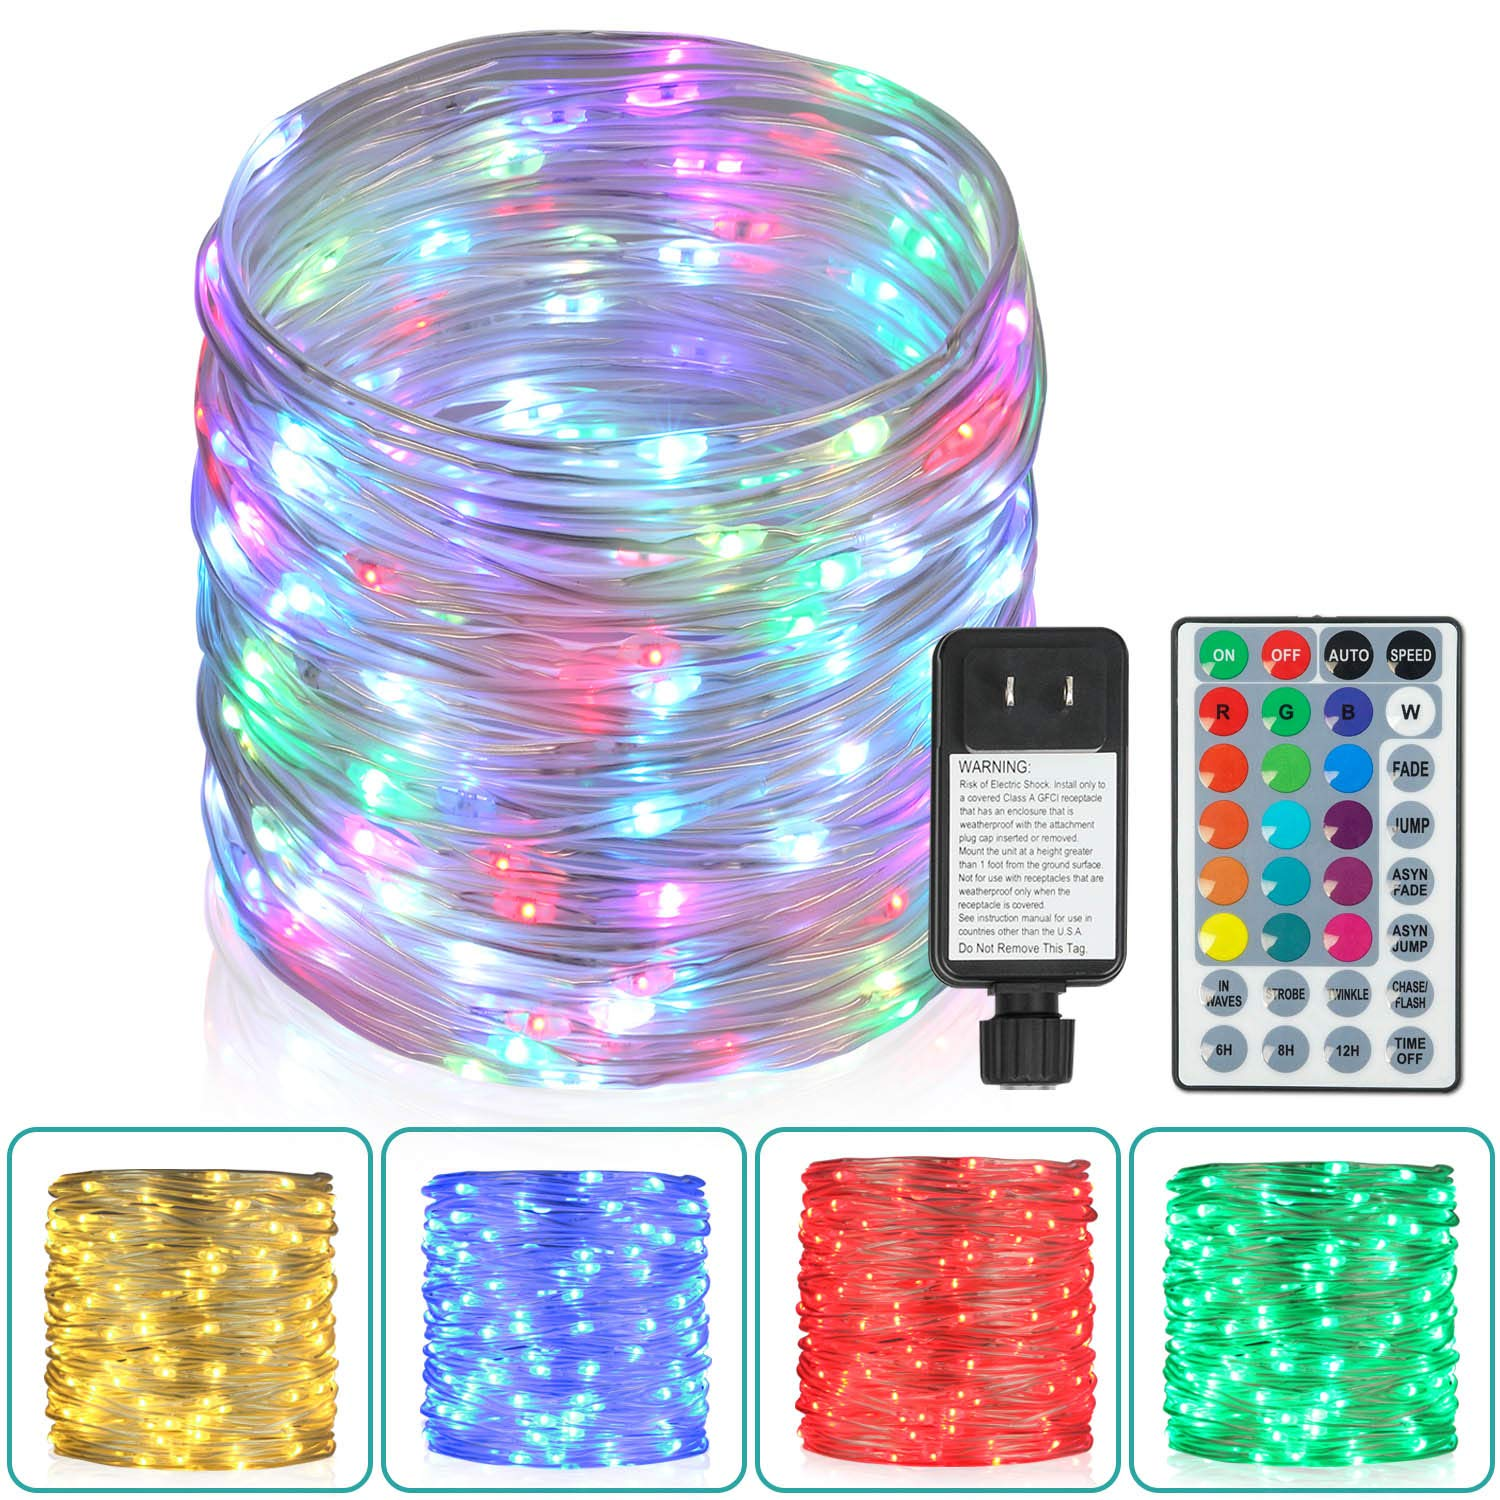 80Ft Outdoor Rope Lights, 240 LEDs Color Changing Lights with Remote, Waterproof String Lights Plug-in Fairy Lights Twinkle Lights for Outdoor, Wedding, Patio, Garden, Home Decor,16 Colors Option by Homestarry